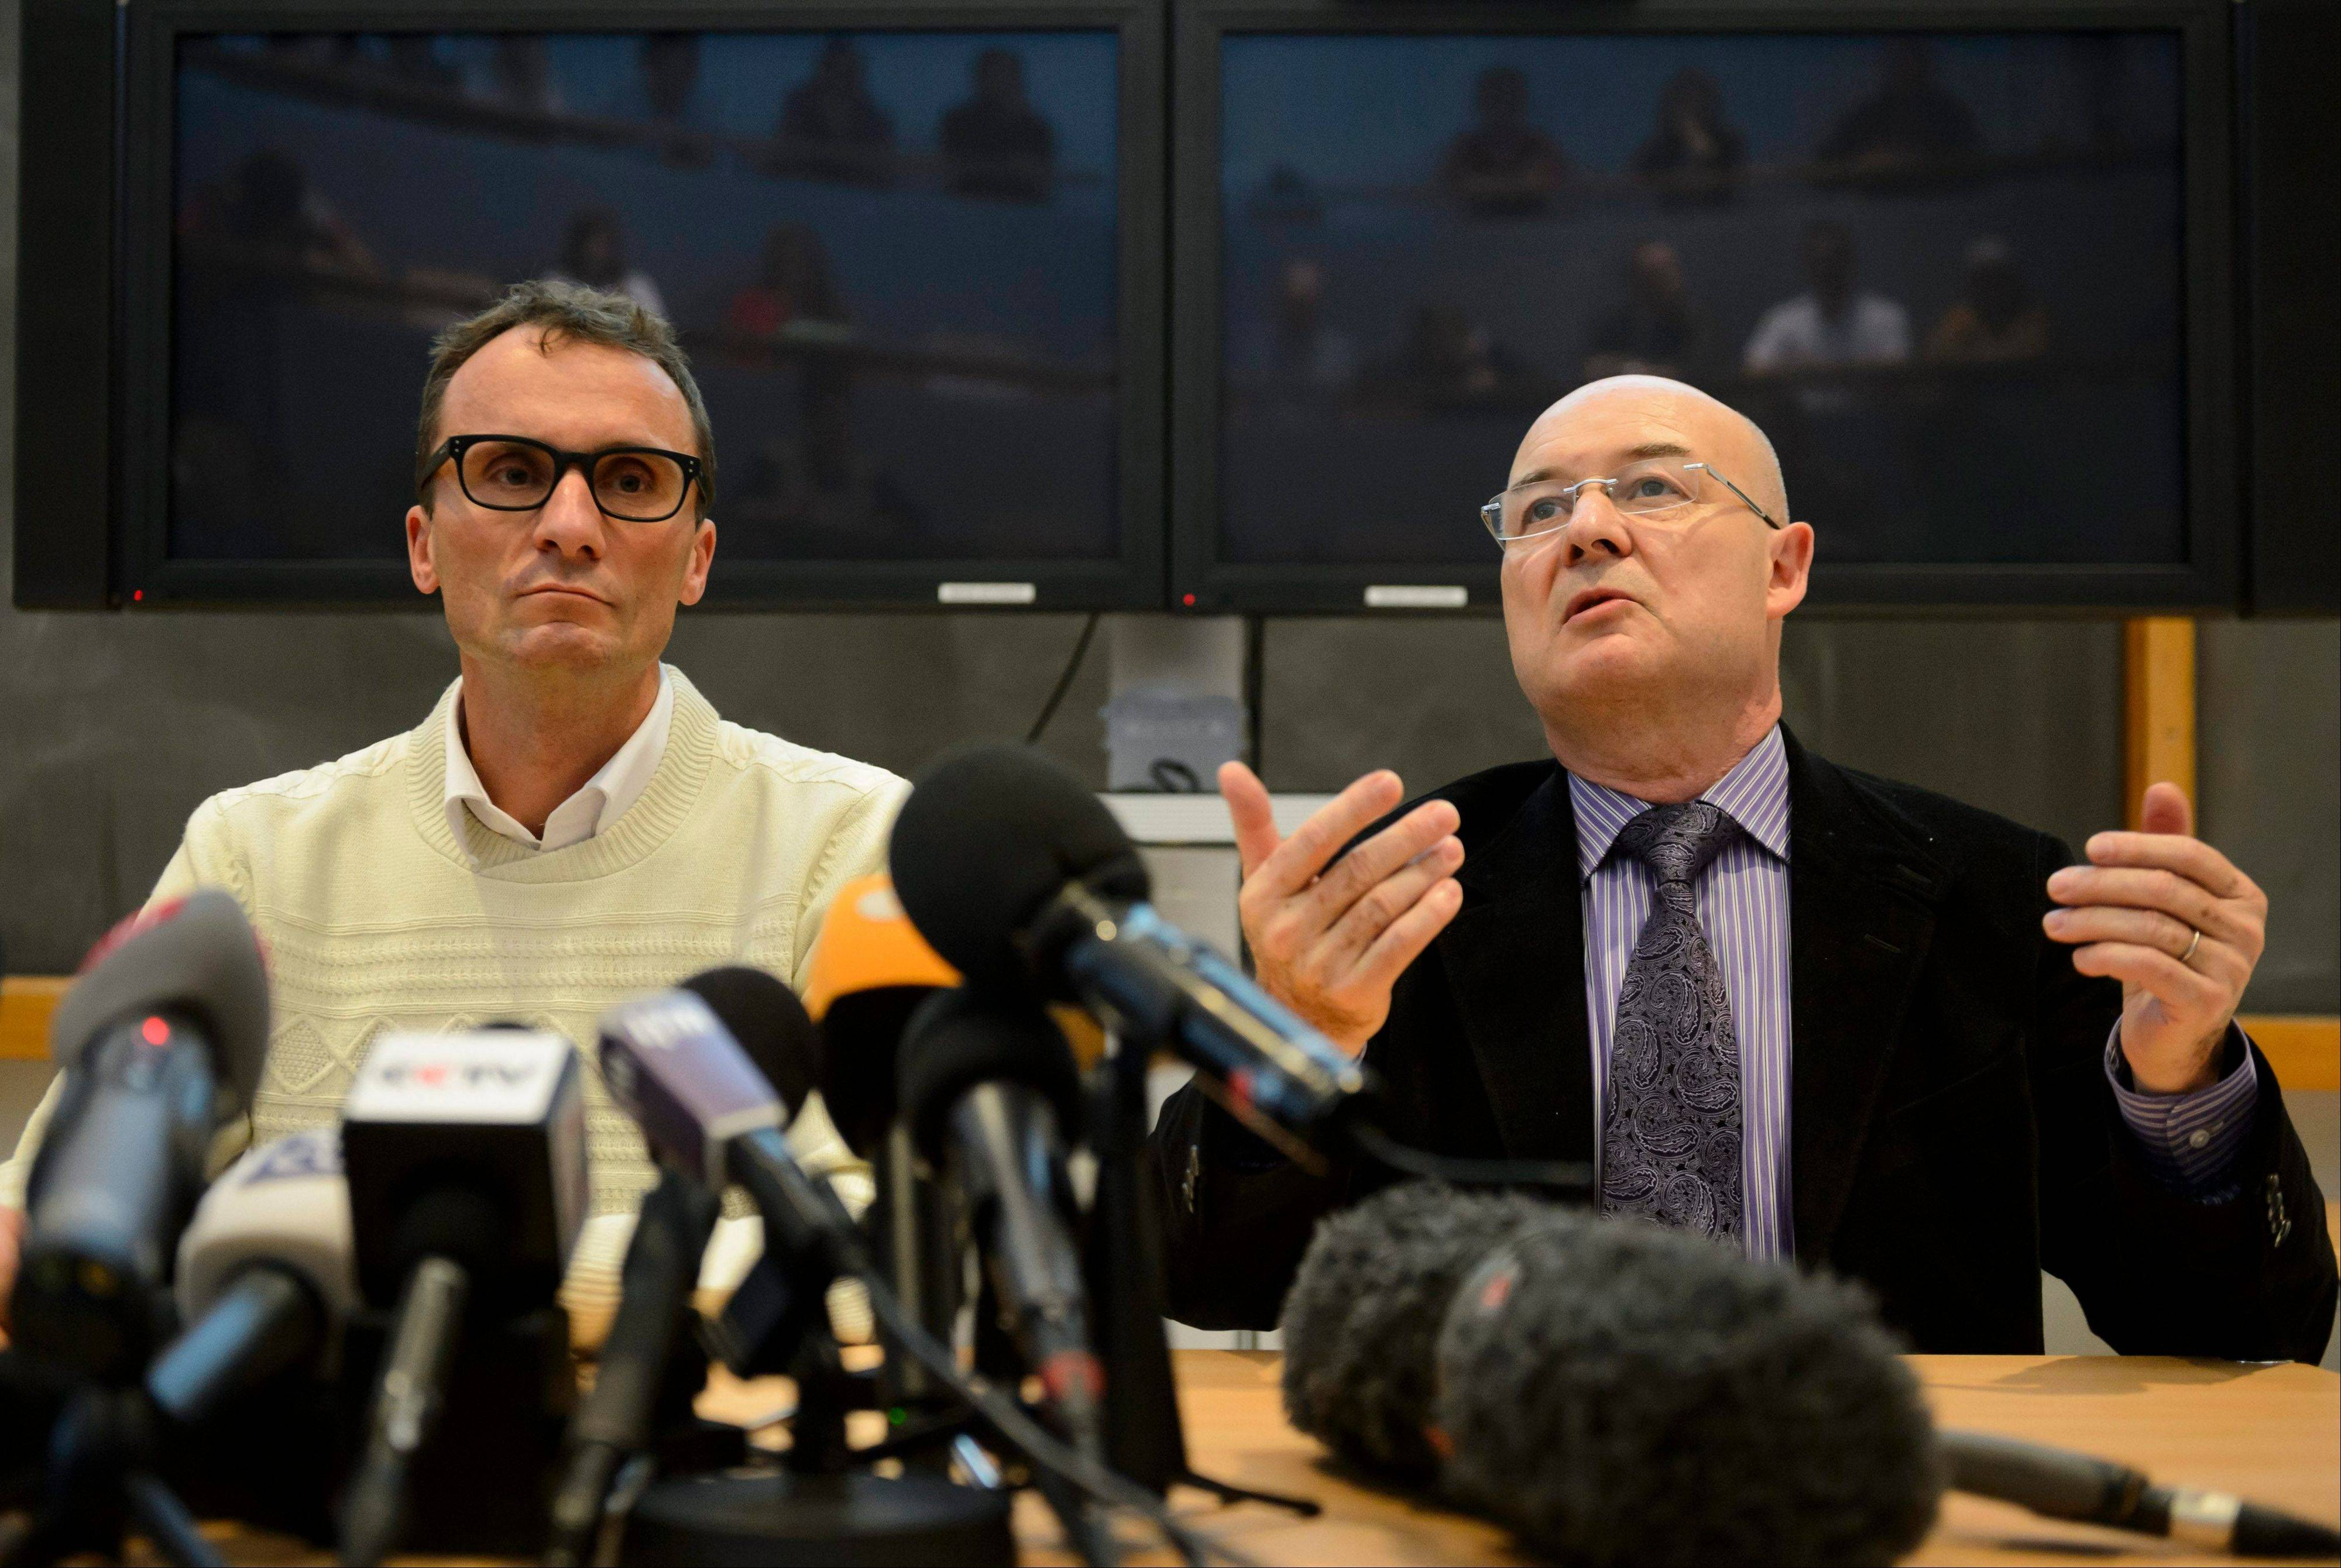 Swiss professors Francois Bochud, left, and Patrice Mangin, present a forensics report concerning the late President Yasser Arafat. The scientists concluded that Arafat ingested lethal radioactive polonium before his death nine years ago, and it could not have been by accident.